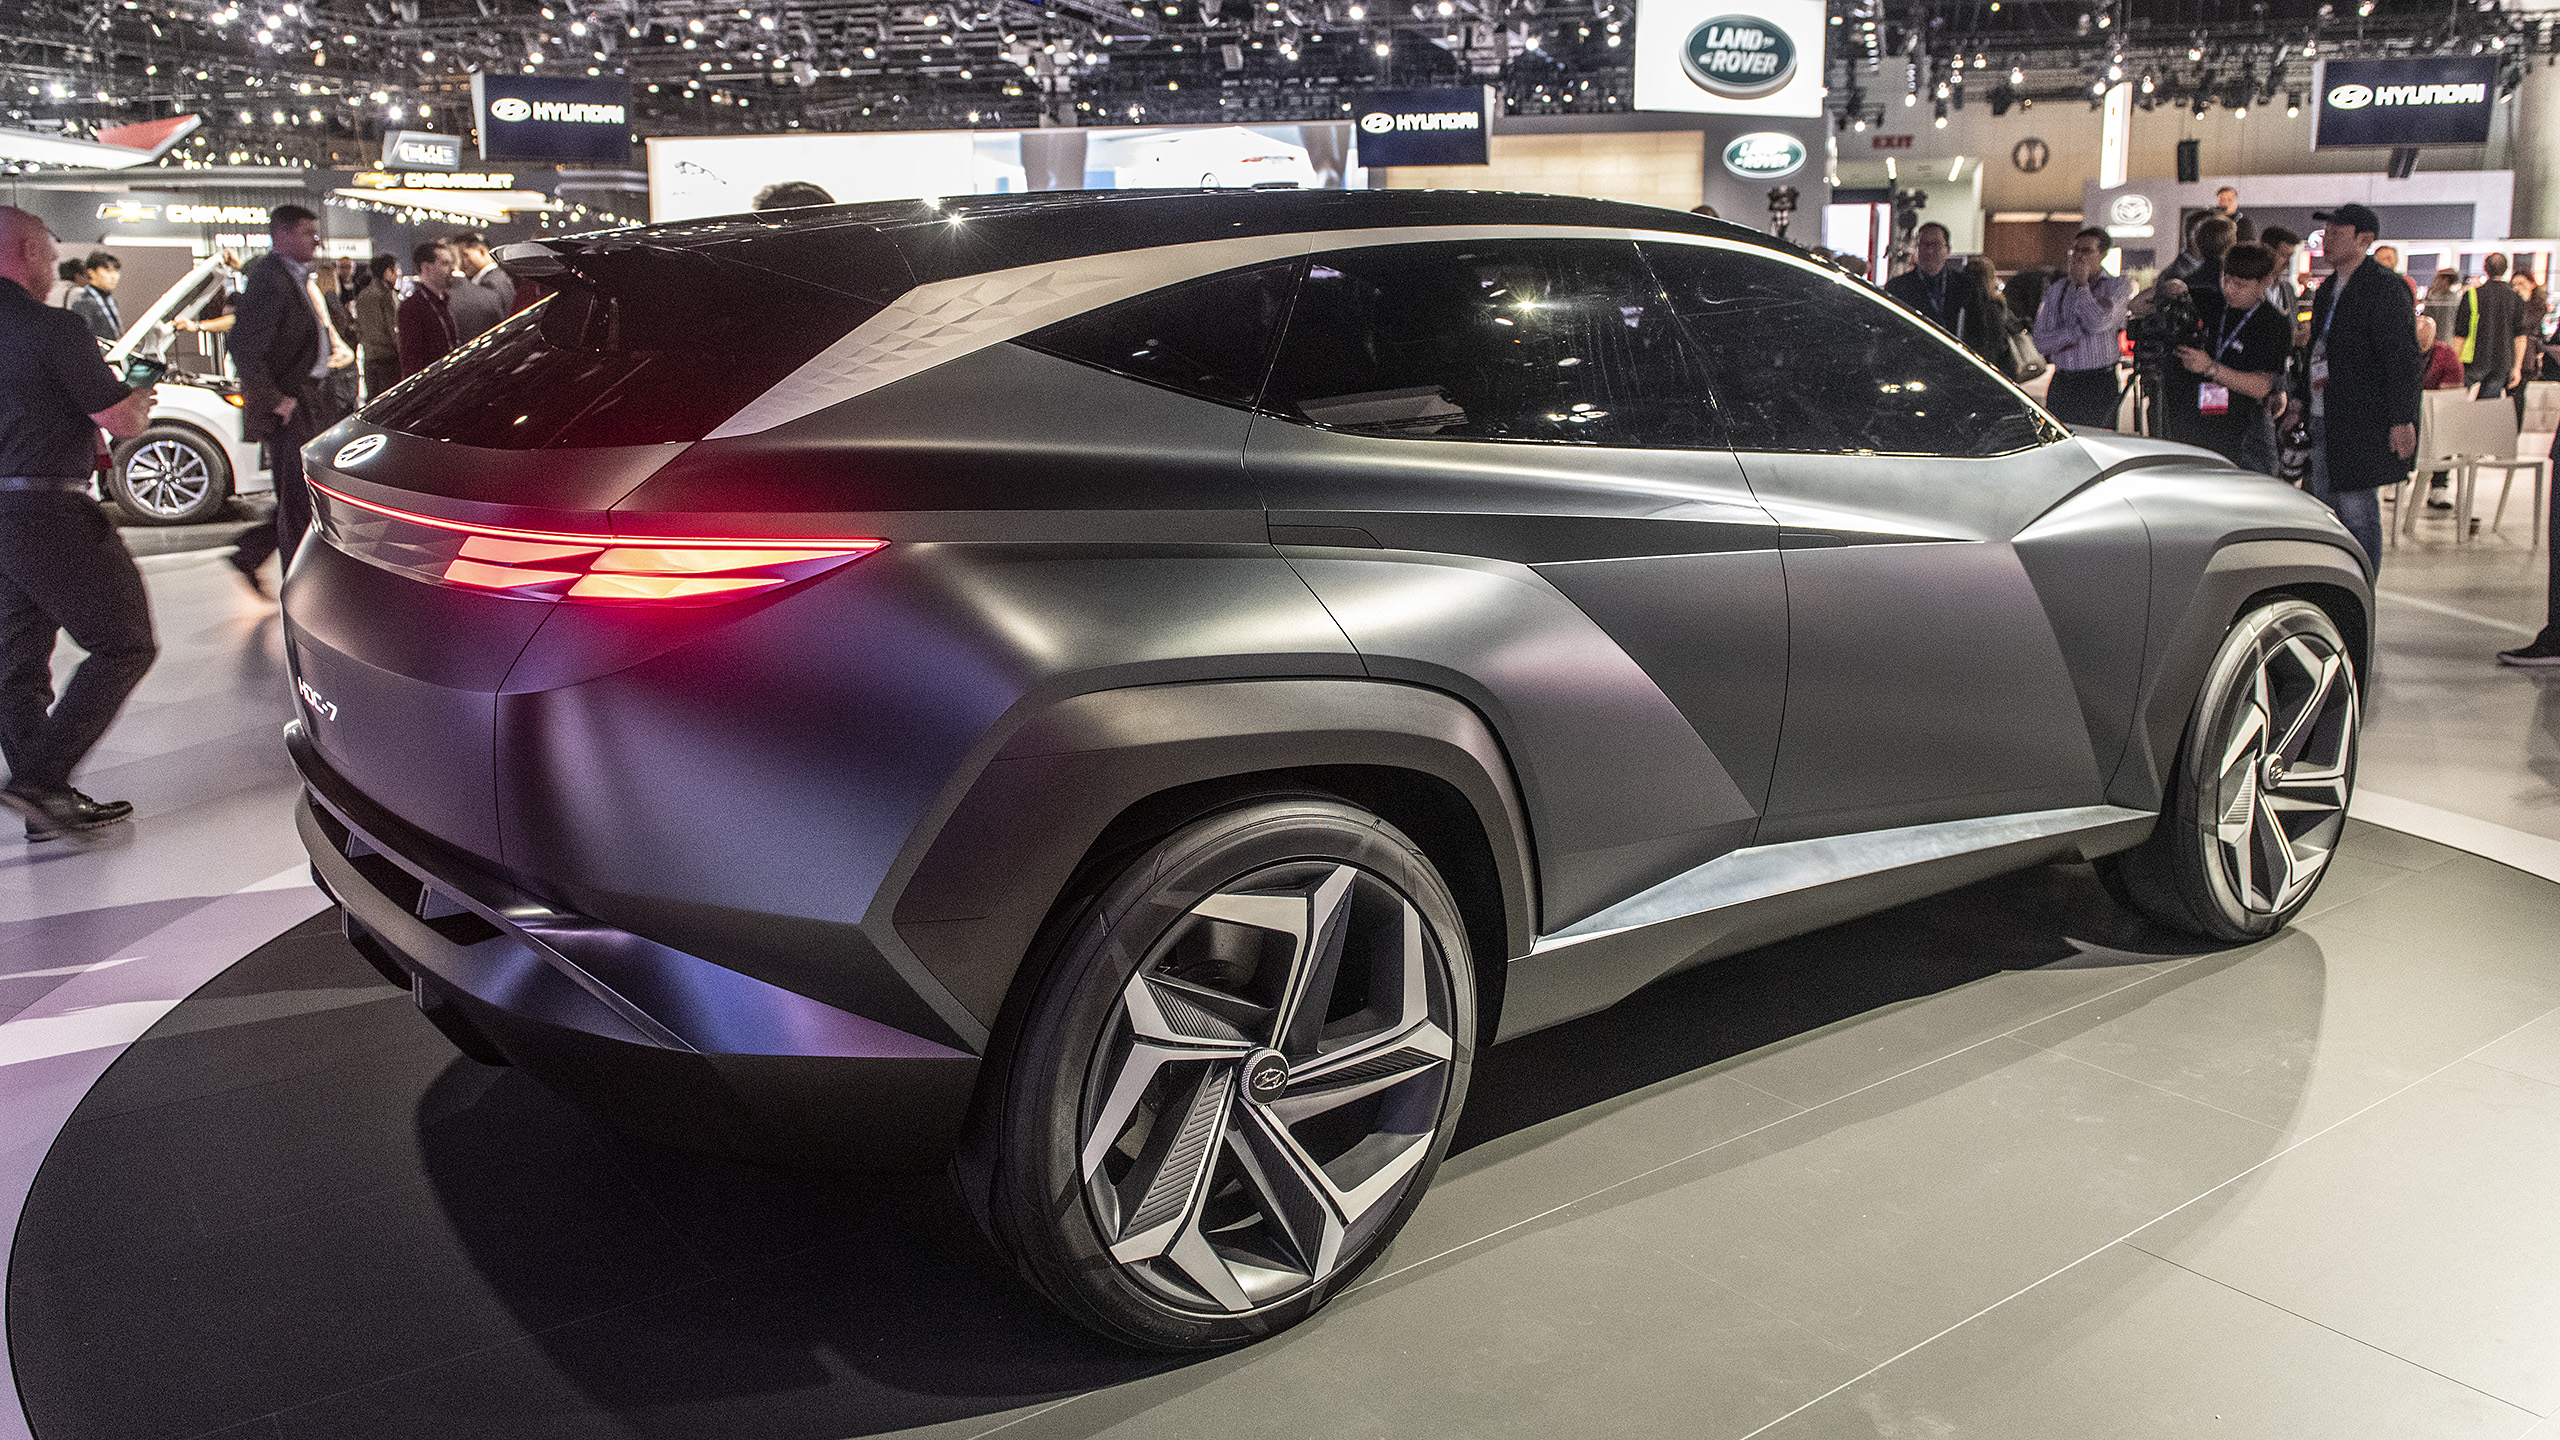 Hyundai Certified Pre Owned >> Hyundai Vision T Plug-in Hybrid SUV Concept debuts at L.A. Auto Show | Autoblog